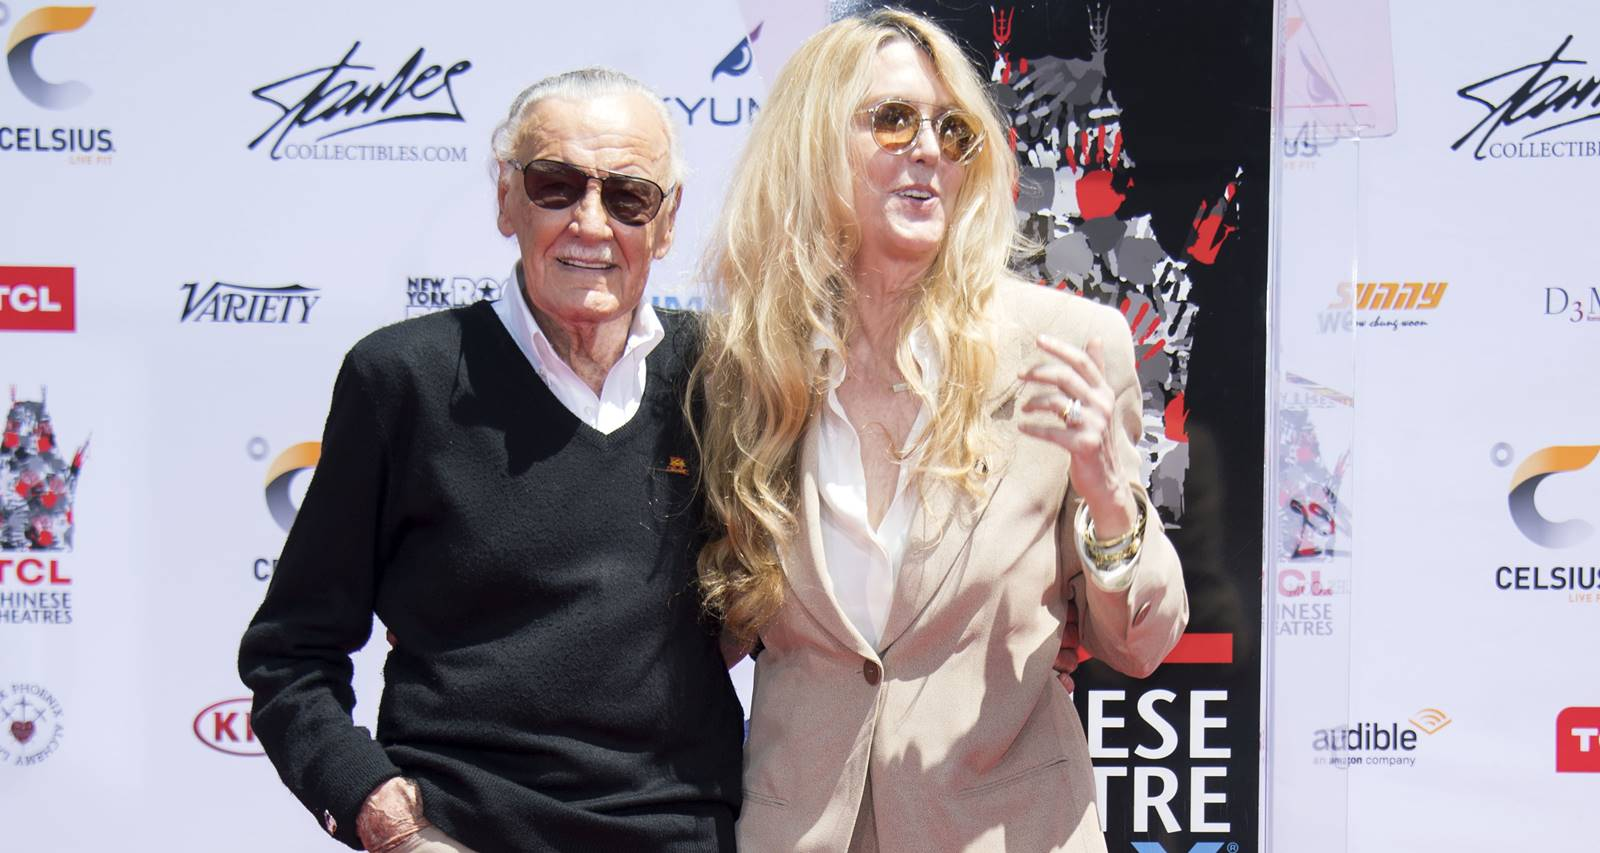 Joan Celia Lee & Jan Lee: Facts to Know About Stan Lee's Daughters